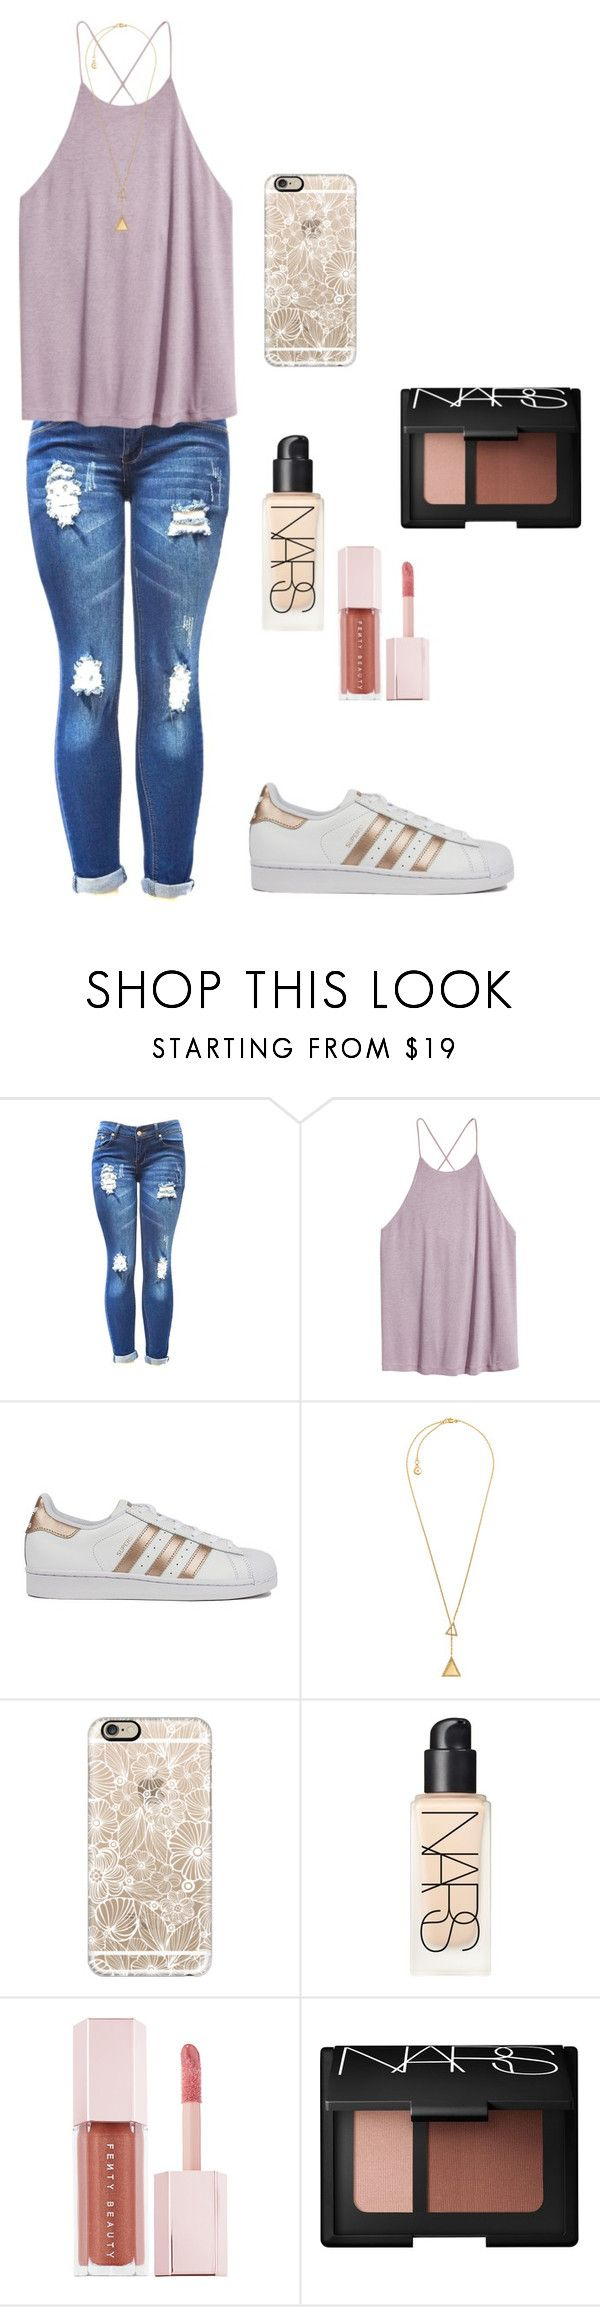 """""""movie night out"""" by dianaheart on Polyvore featuring H&M, adidas, Michael Kors, Casetify, NARS Cosmetics and Puma"""